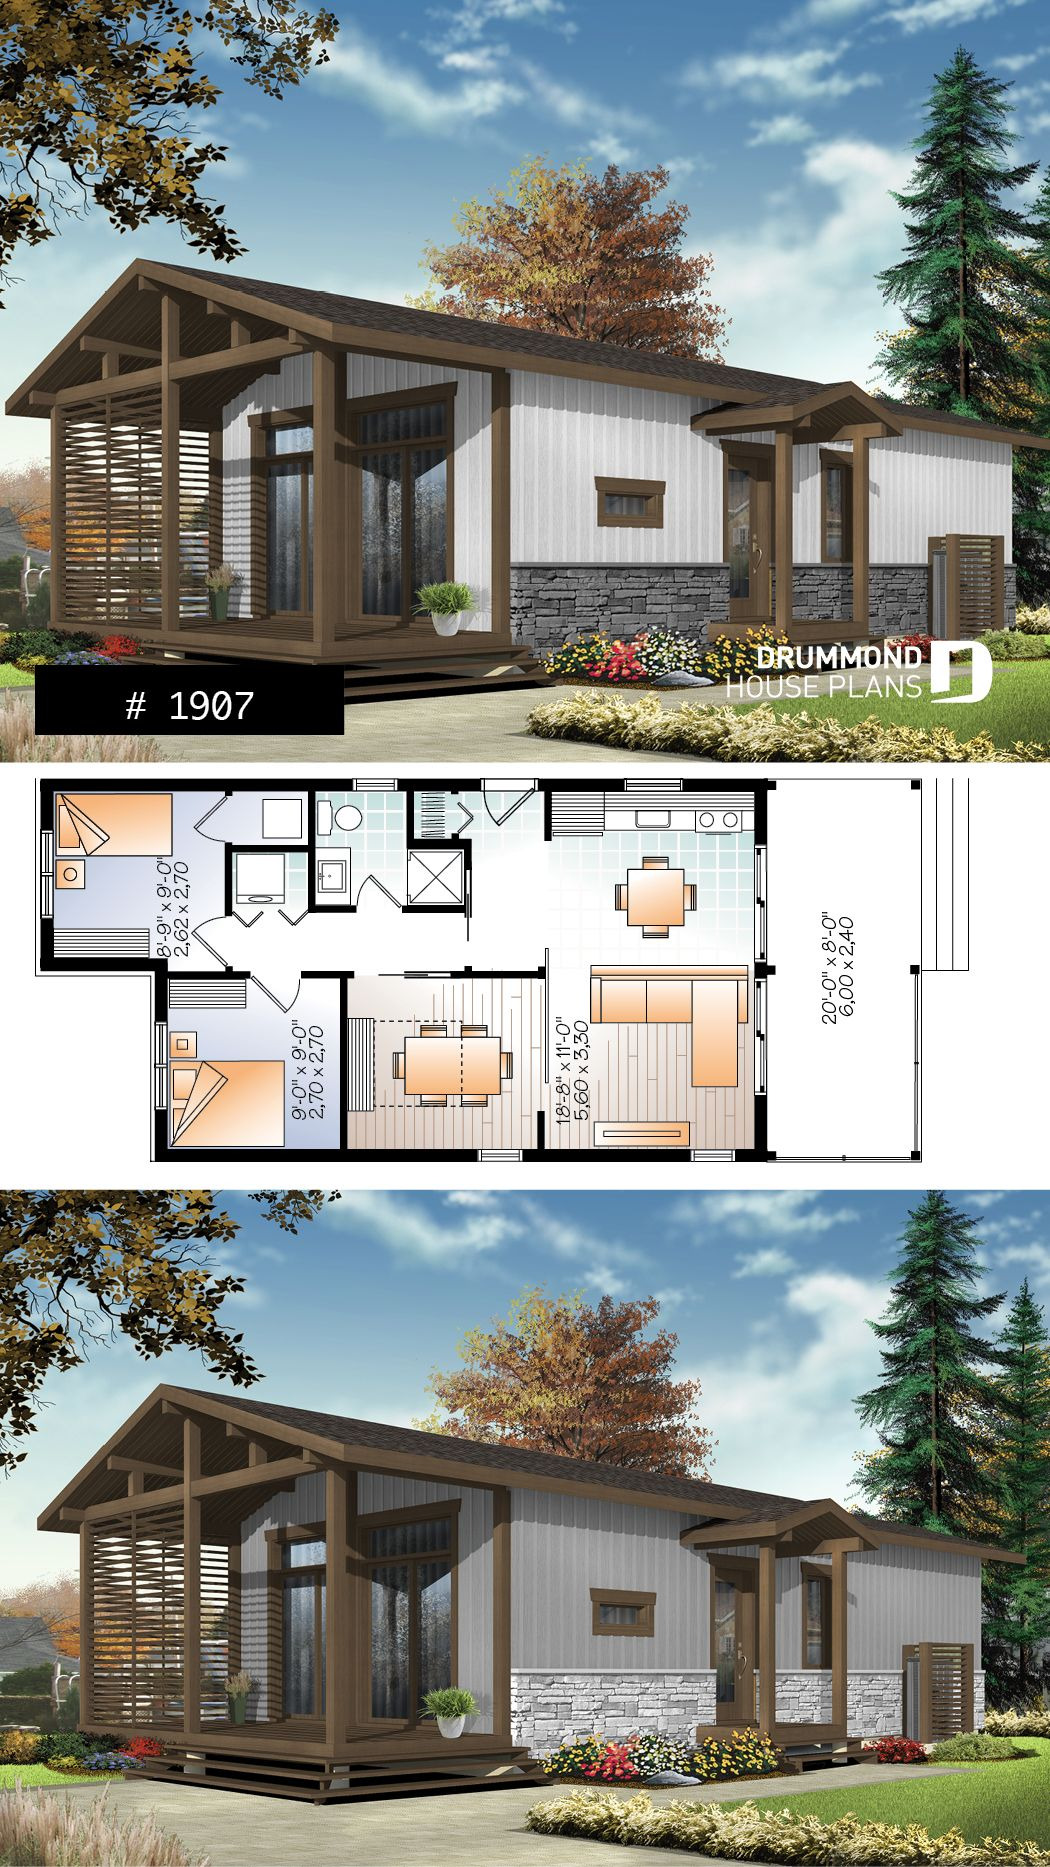 700 Sq Ft House Plans Luxury Modern Rustic 700 Sq Ft Tiny Small House Plan Very